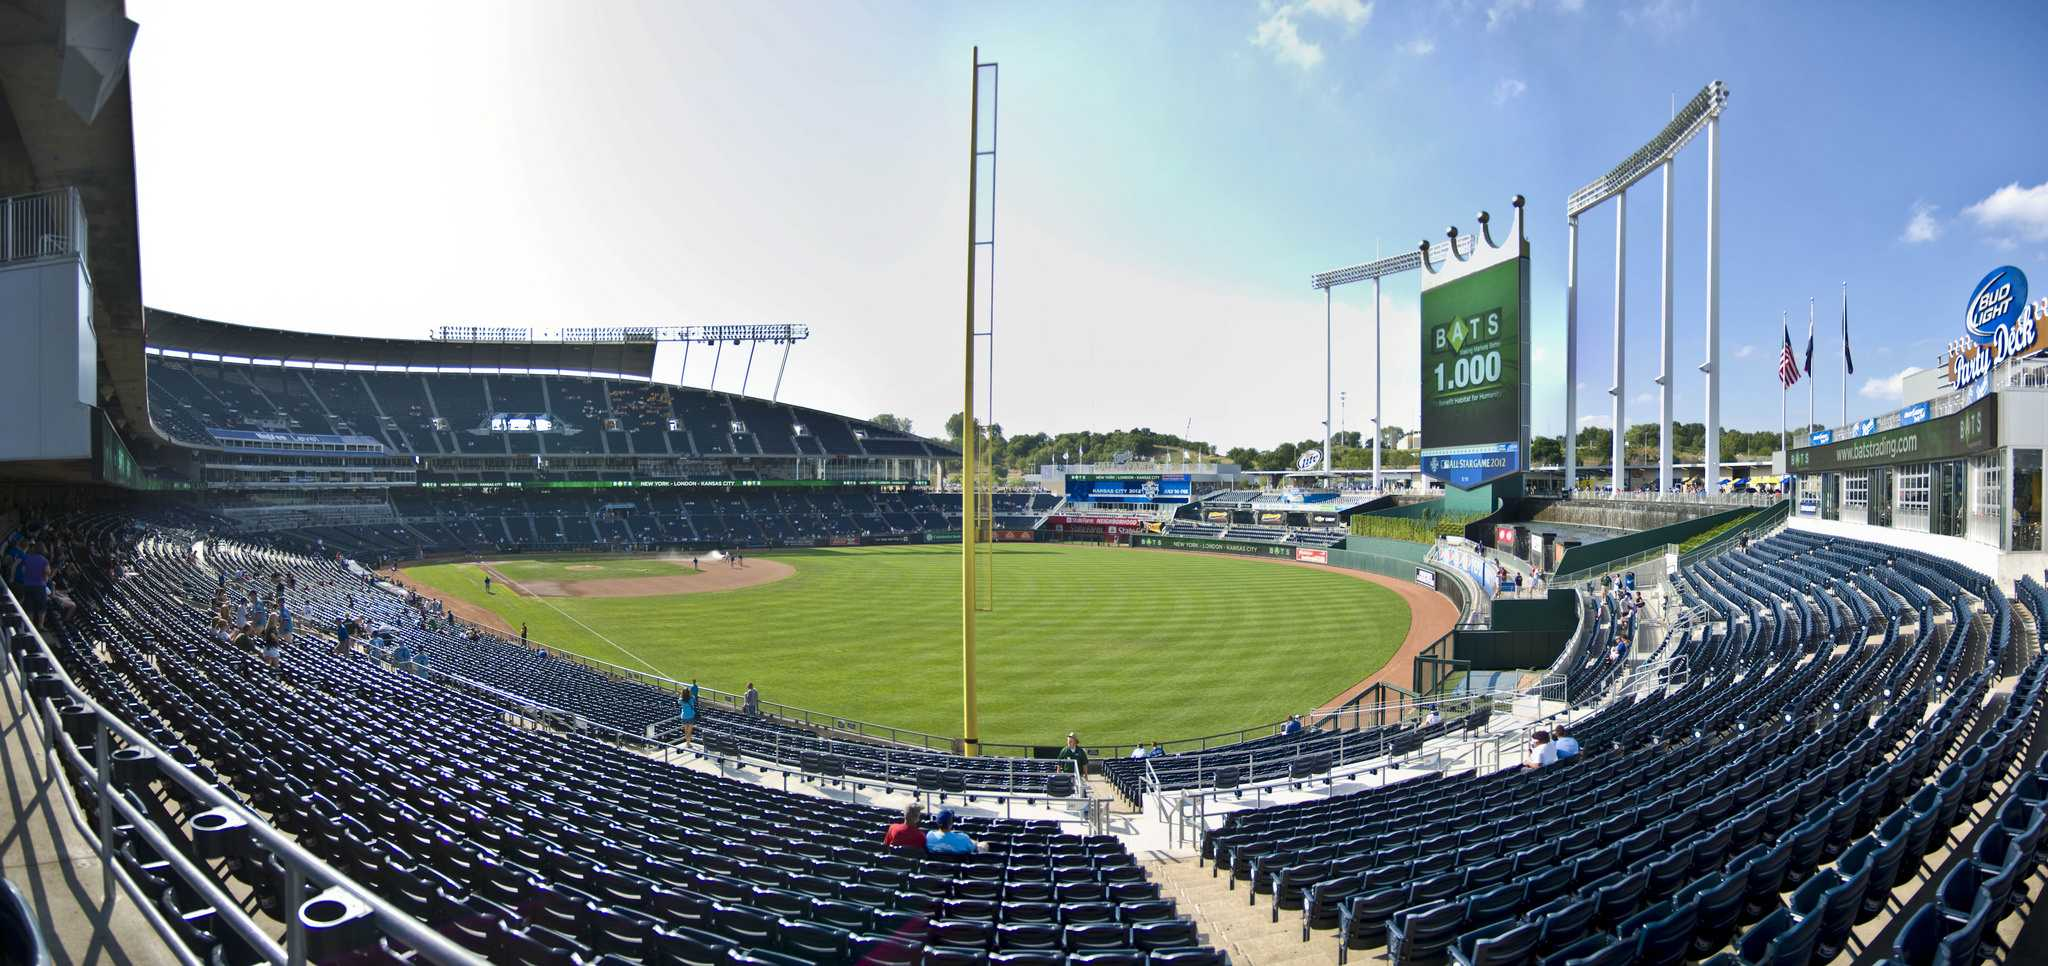 A panoramic view of Kauffman Stadium in Kansas City, Mo. The Kansas City Royals have played in the World Series the last two seasons, losing to the San Francisco Giants in 2014 but defeating the New York Mets in 2015.